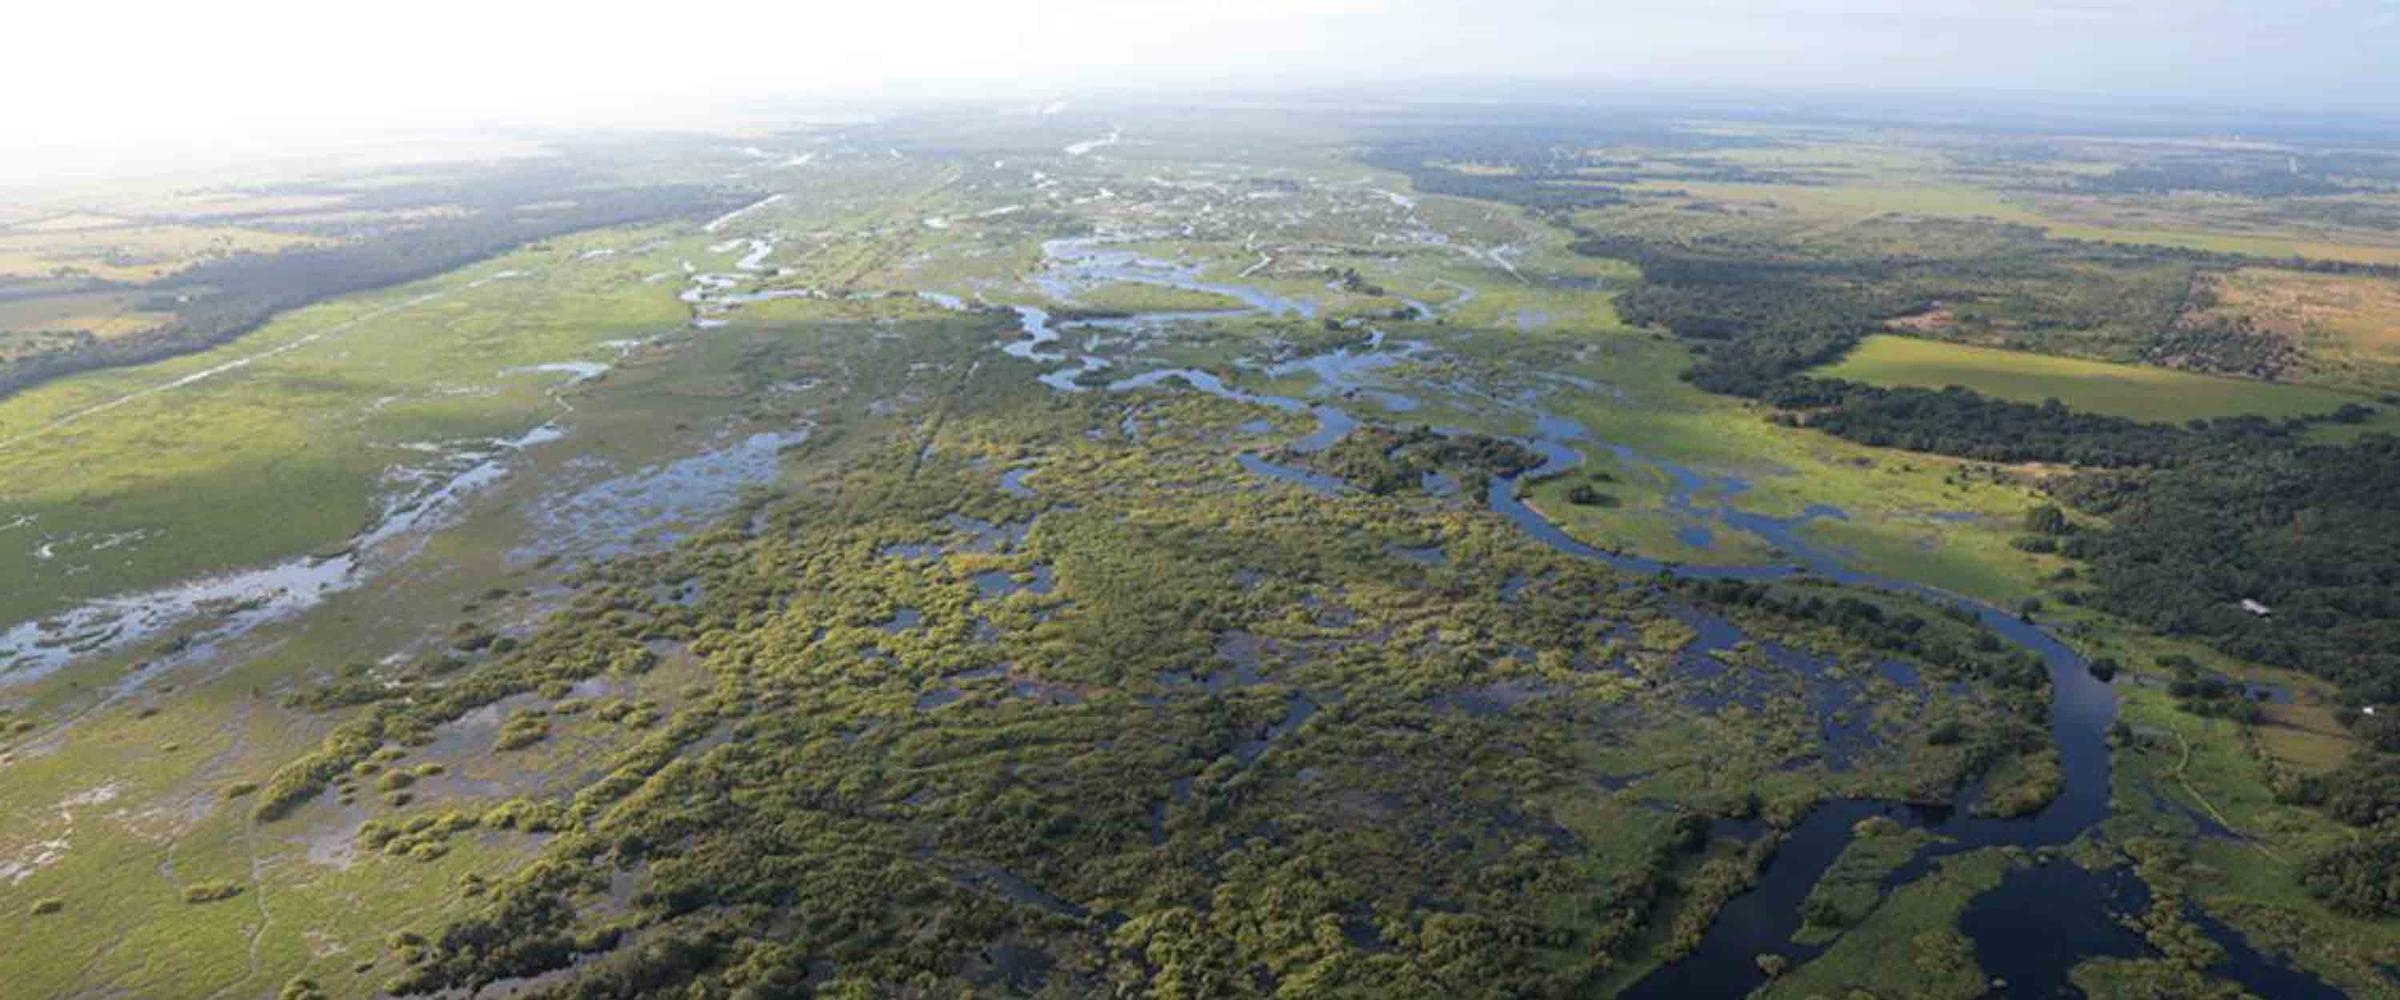 kissimmee river floodplain